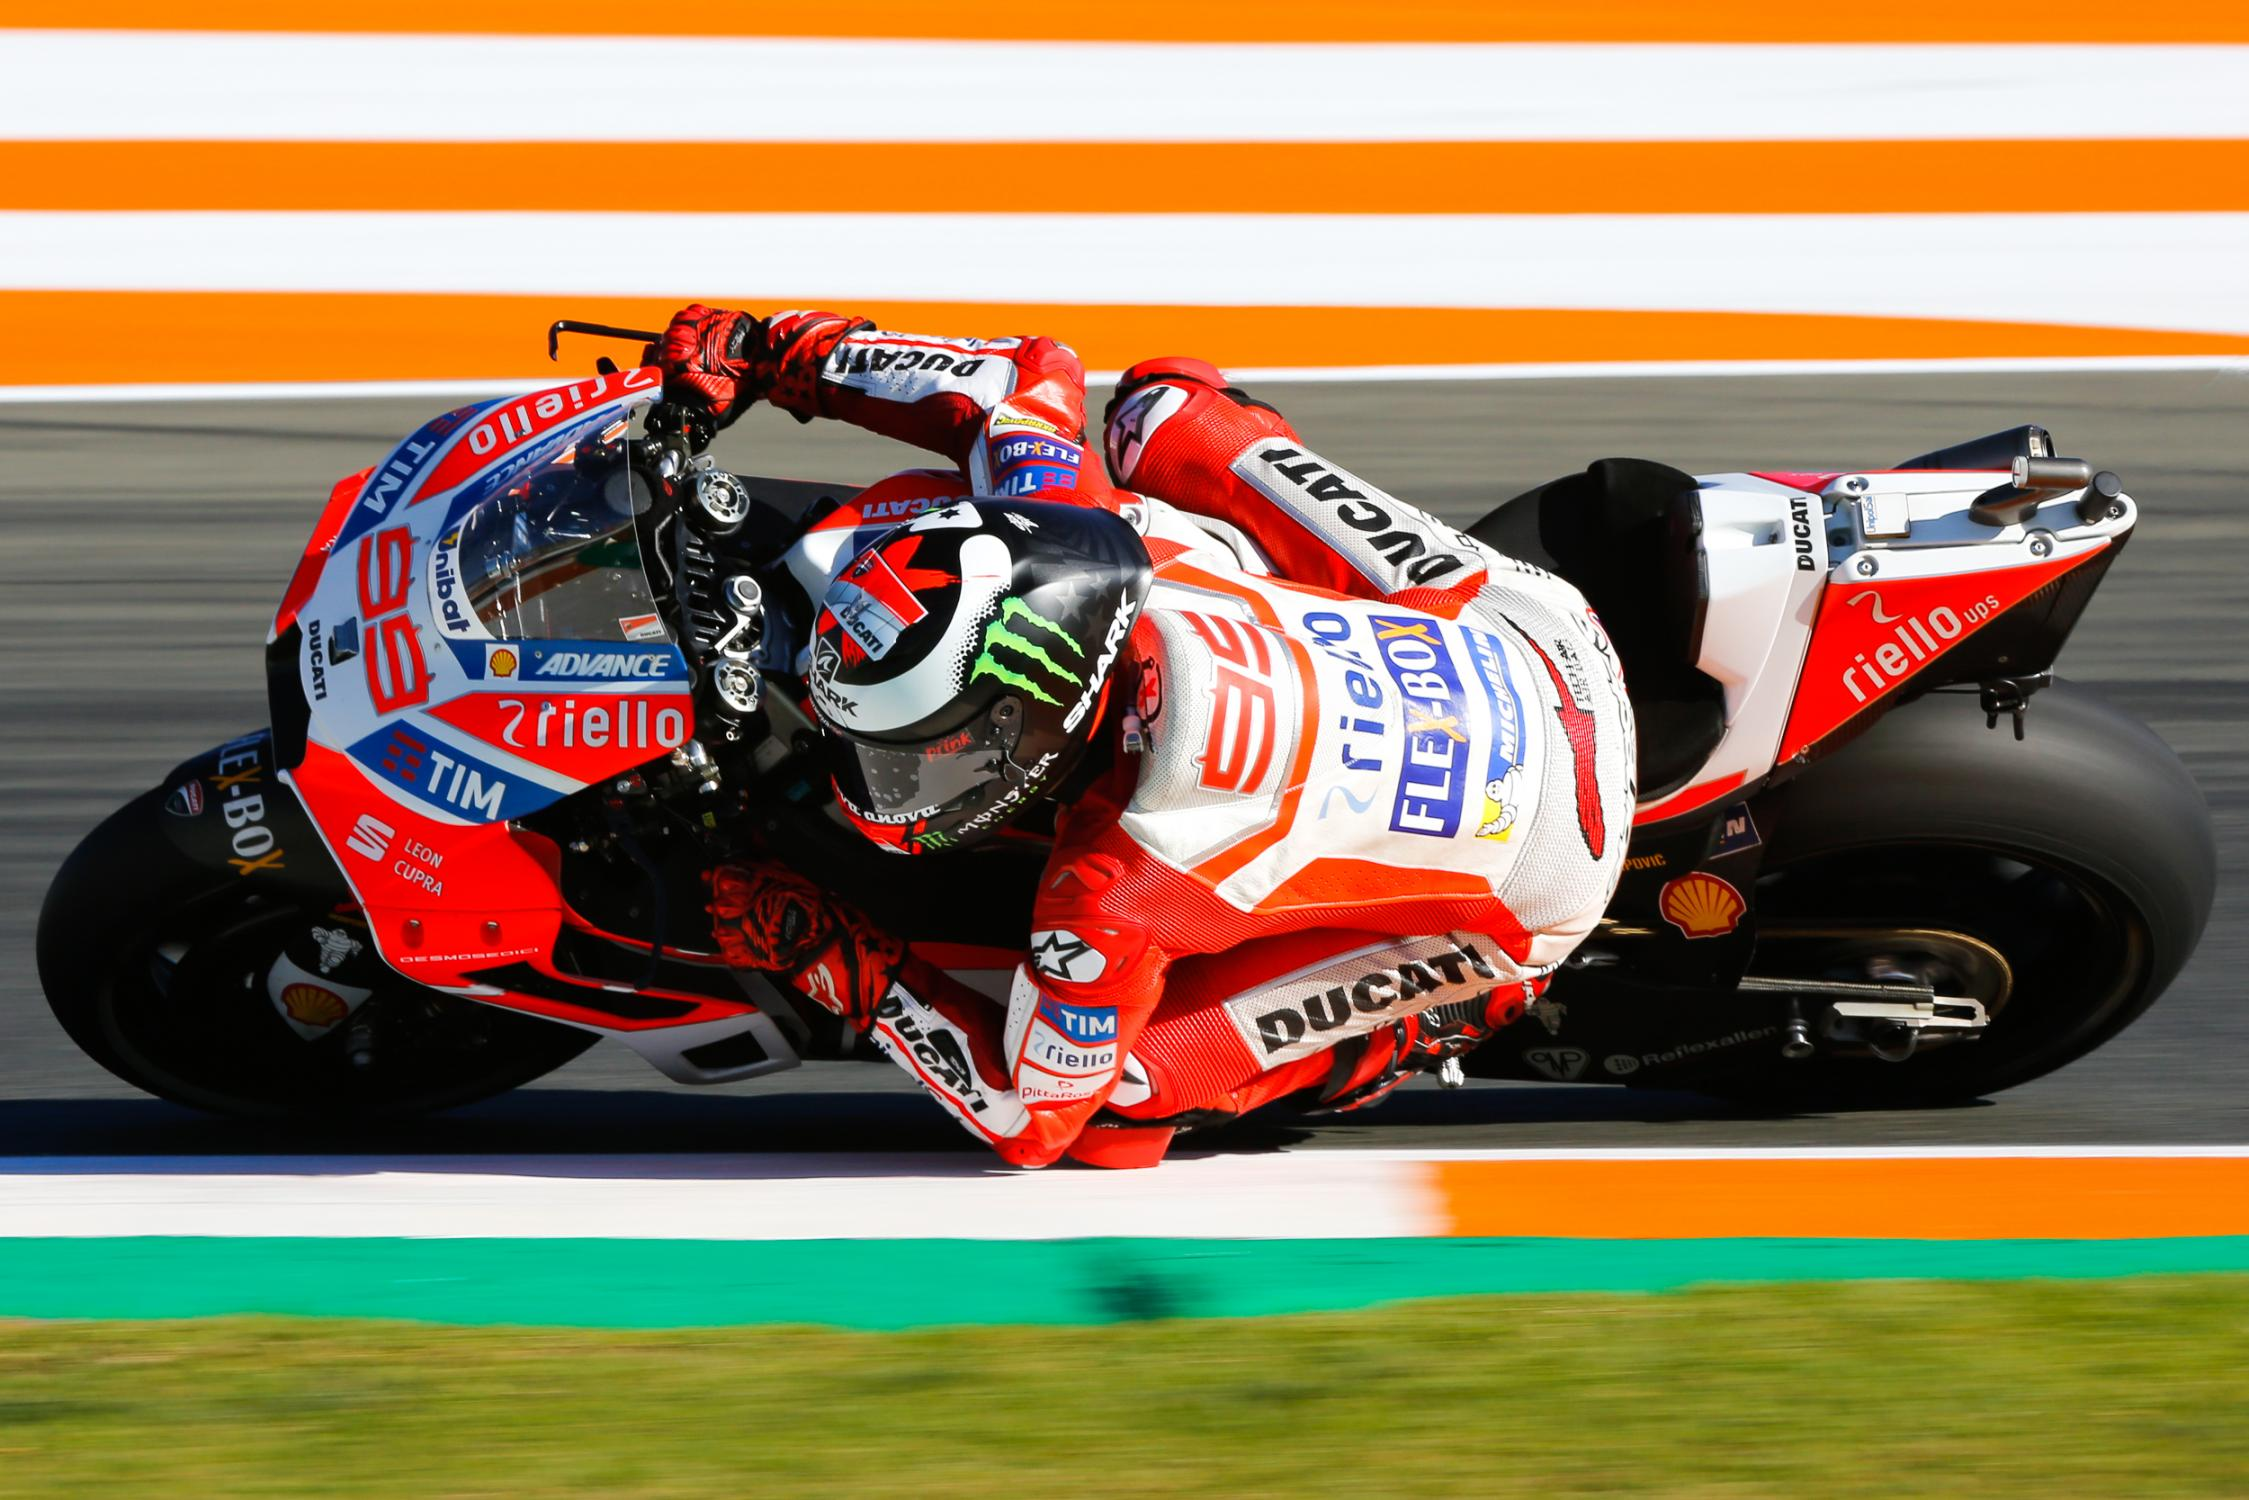 [GP] Valencia _gp_4512.gallery_full_top_fullscreen